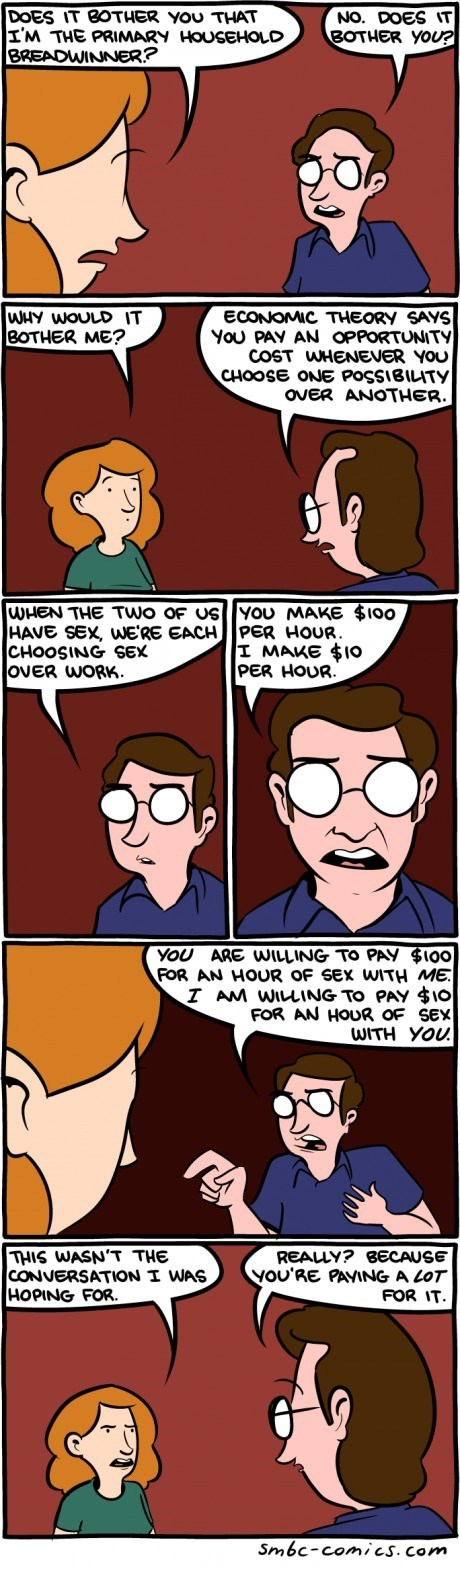 relationships,money,web comics